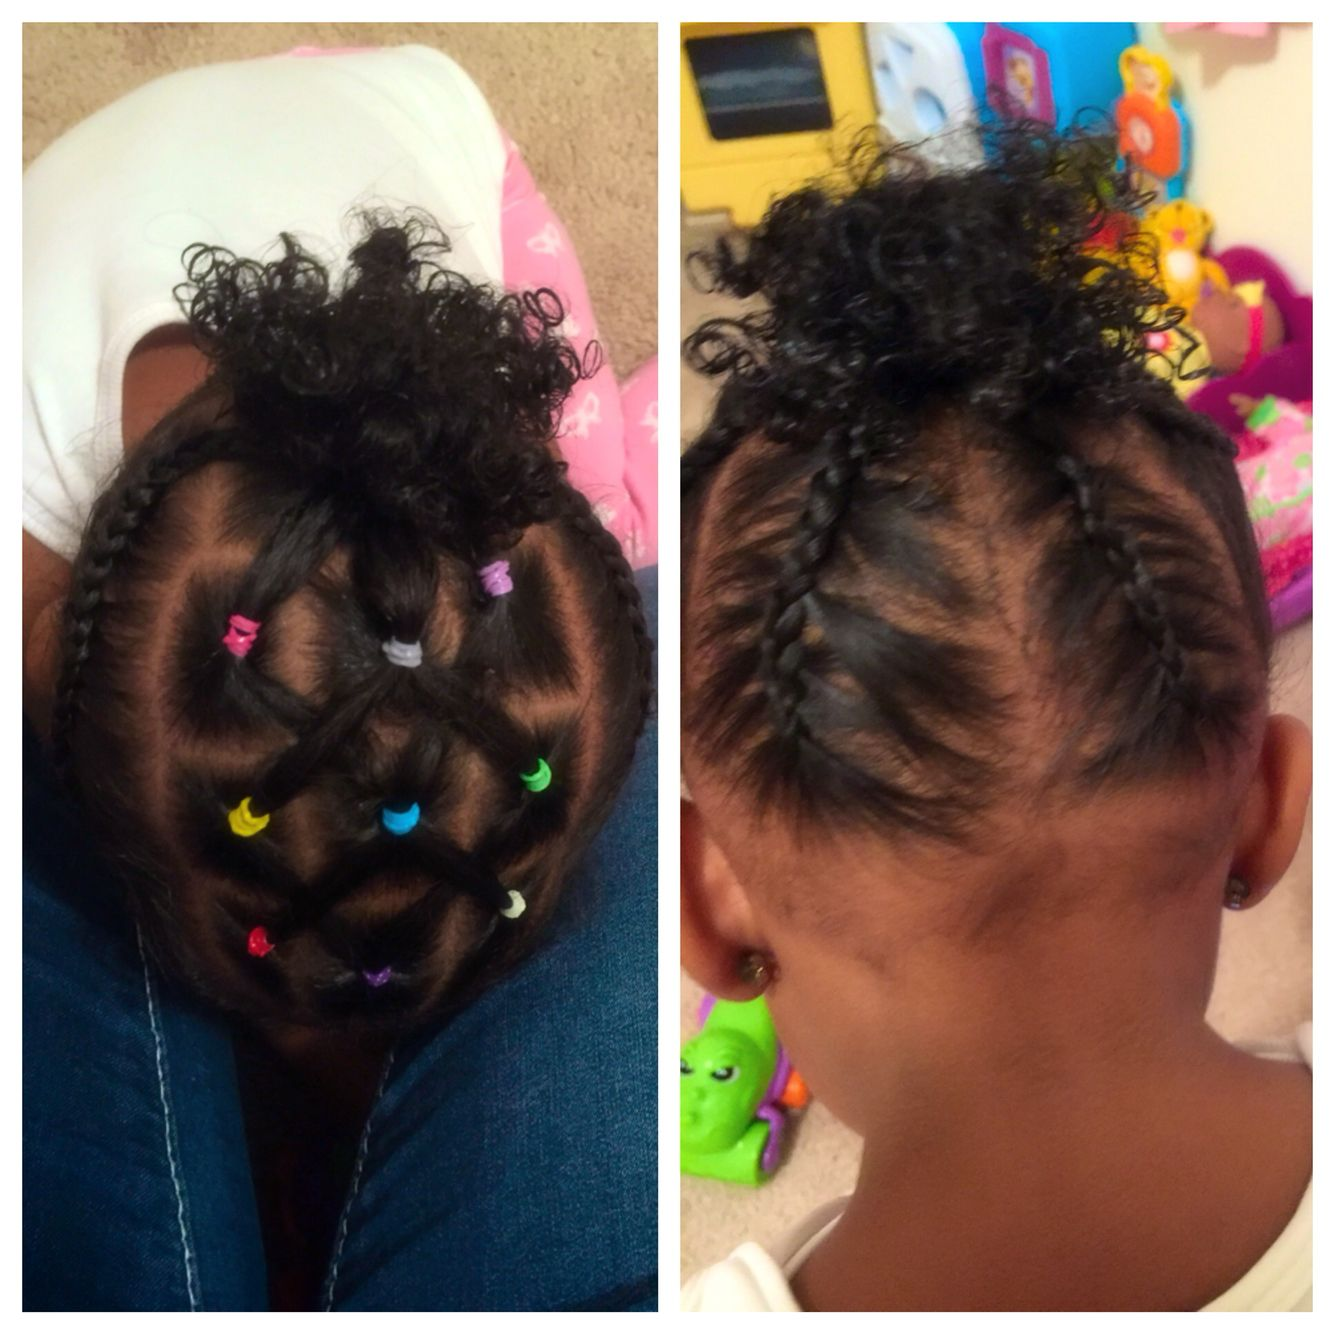 toddler hair styles #toddler #rubberbands #cornrows #mixedkids